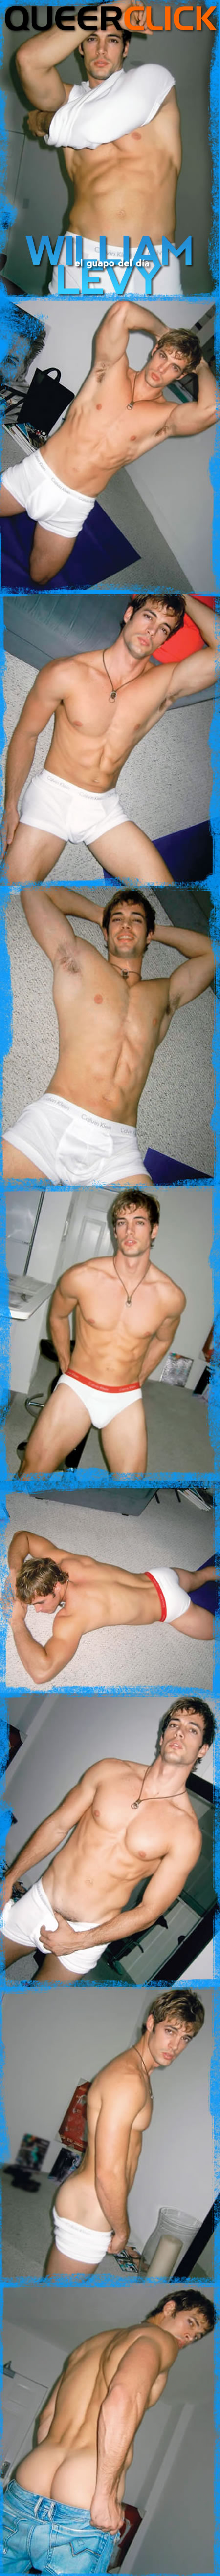 El Guapo del Día: William Levy